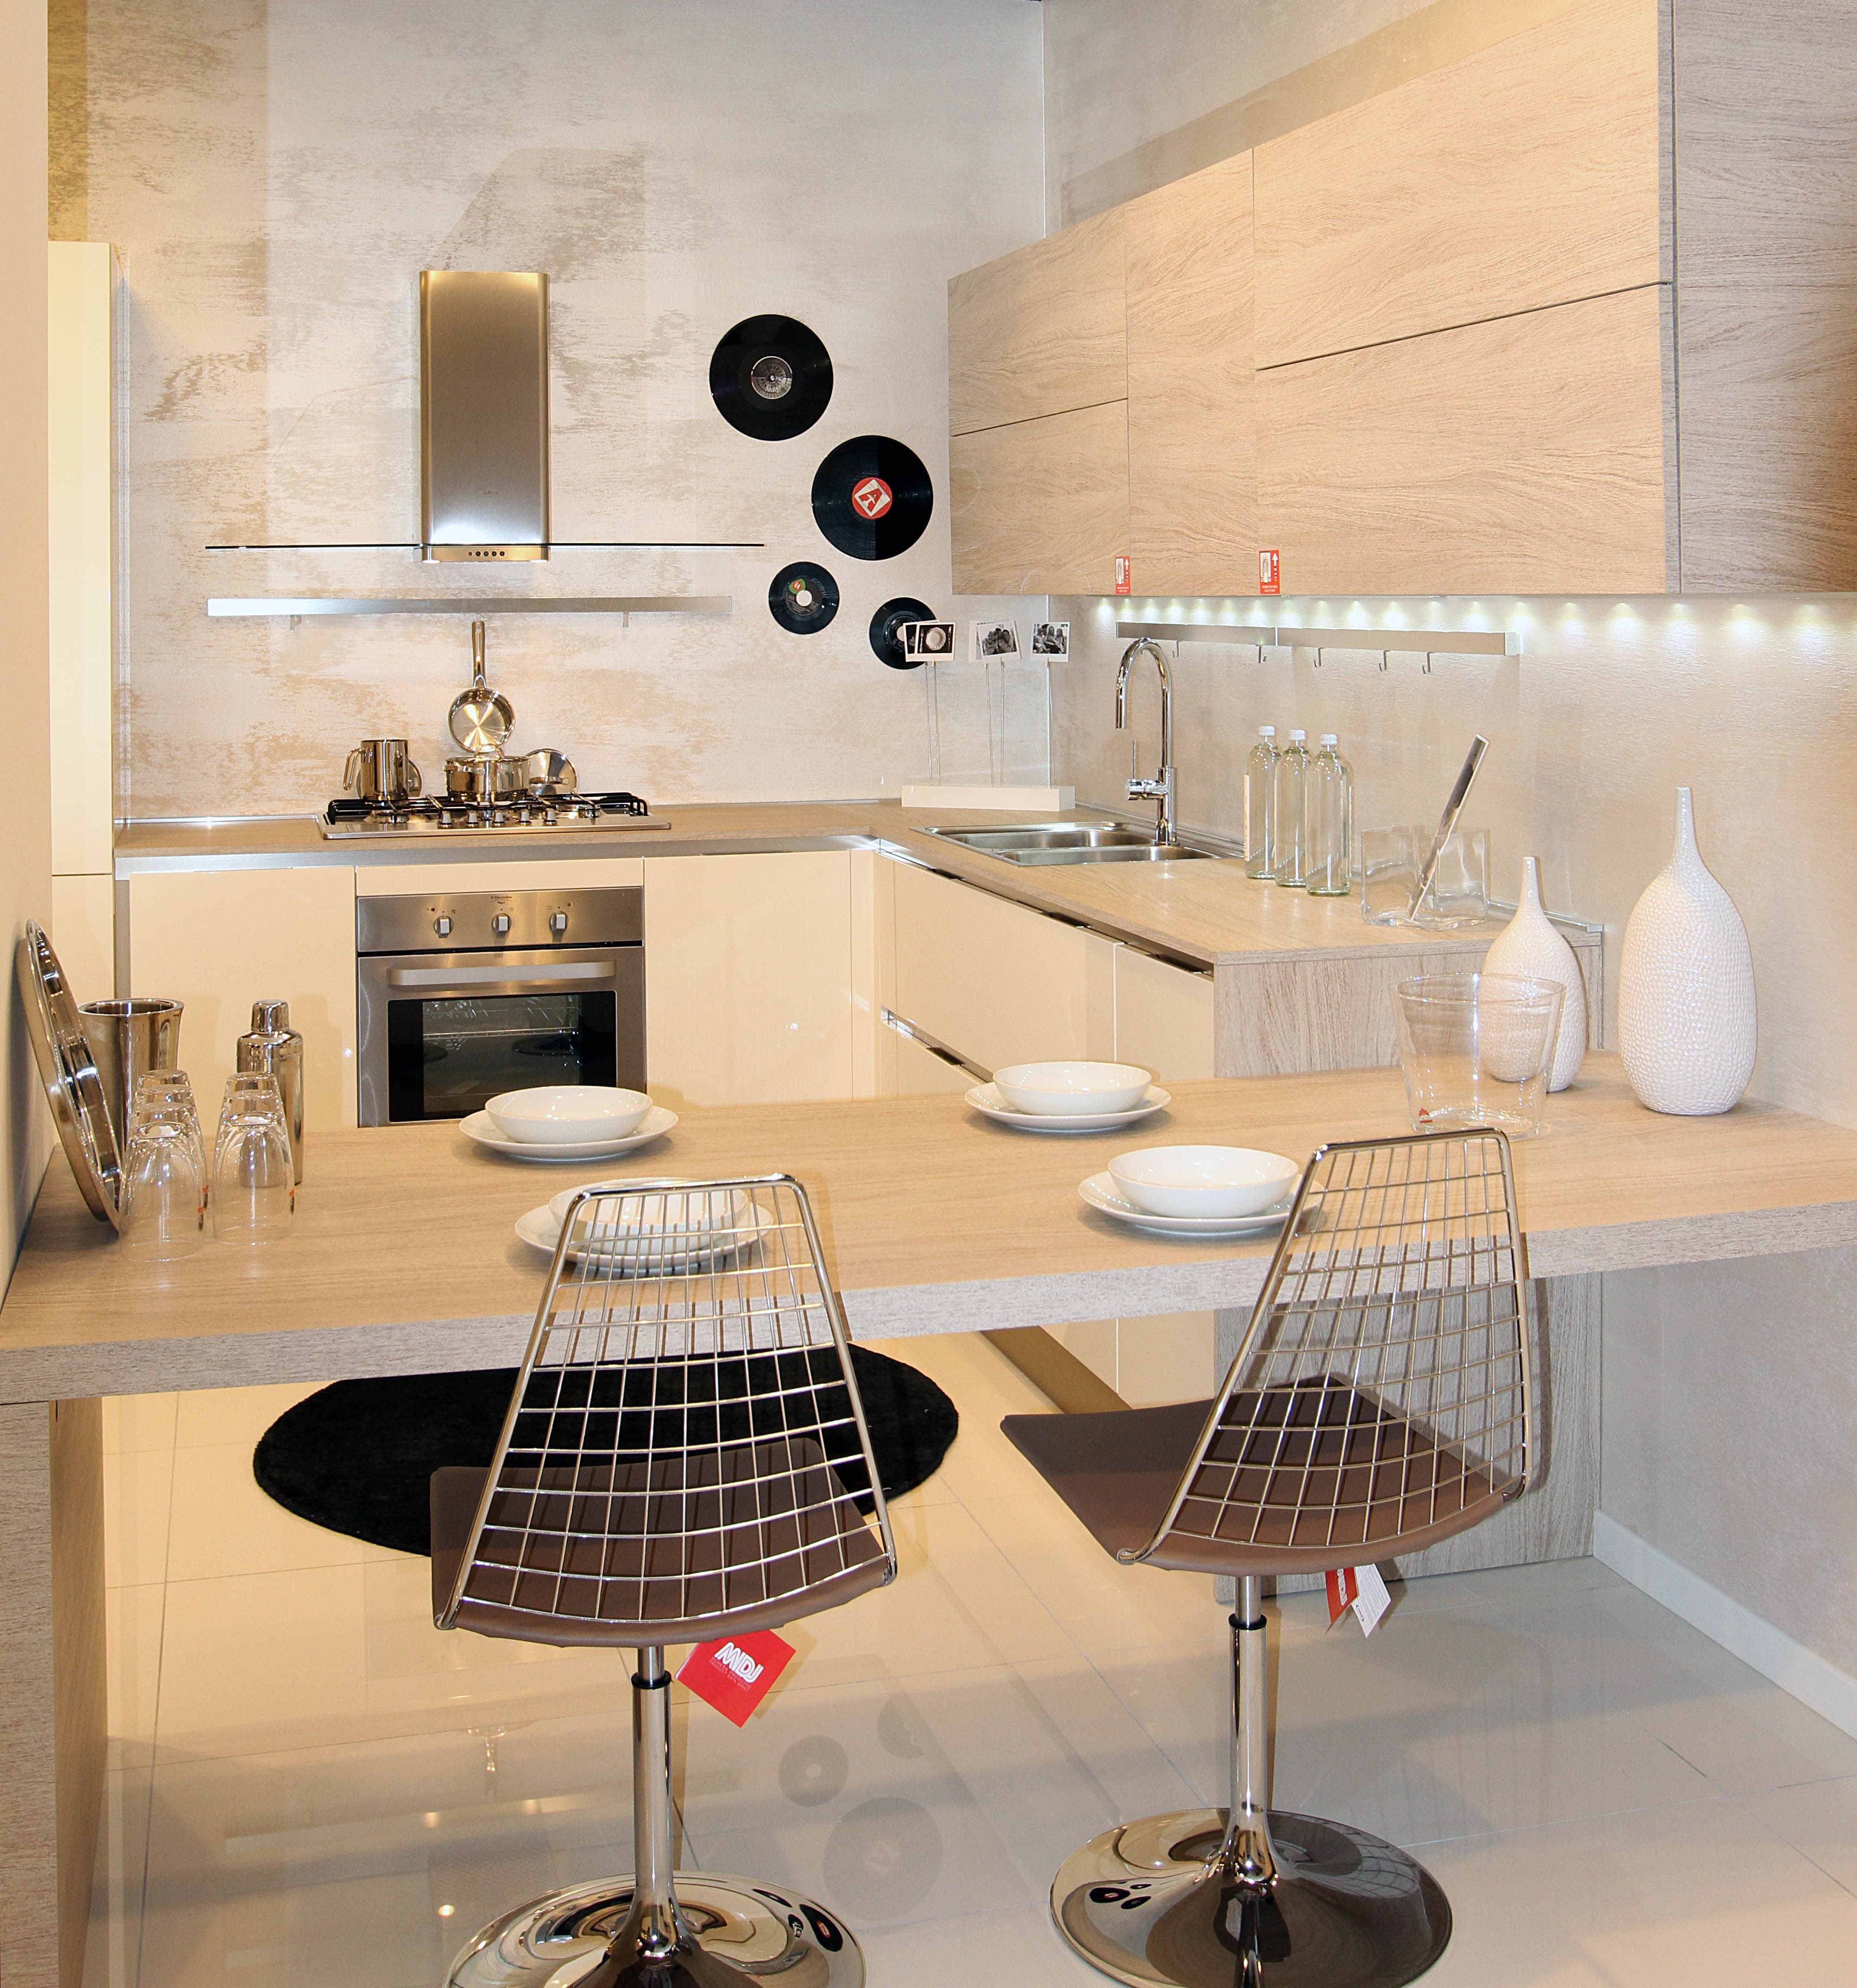 Outlet Cucine Lombardia. Cucina Creo Mod Rewind With Outlet Cucine ...